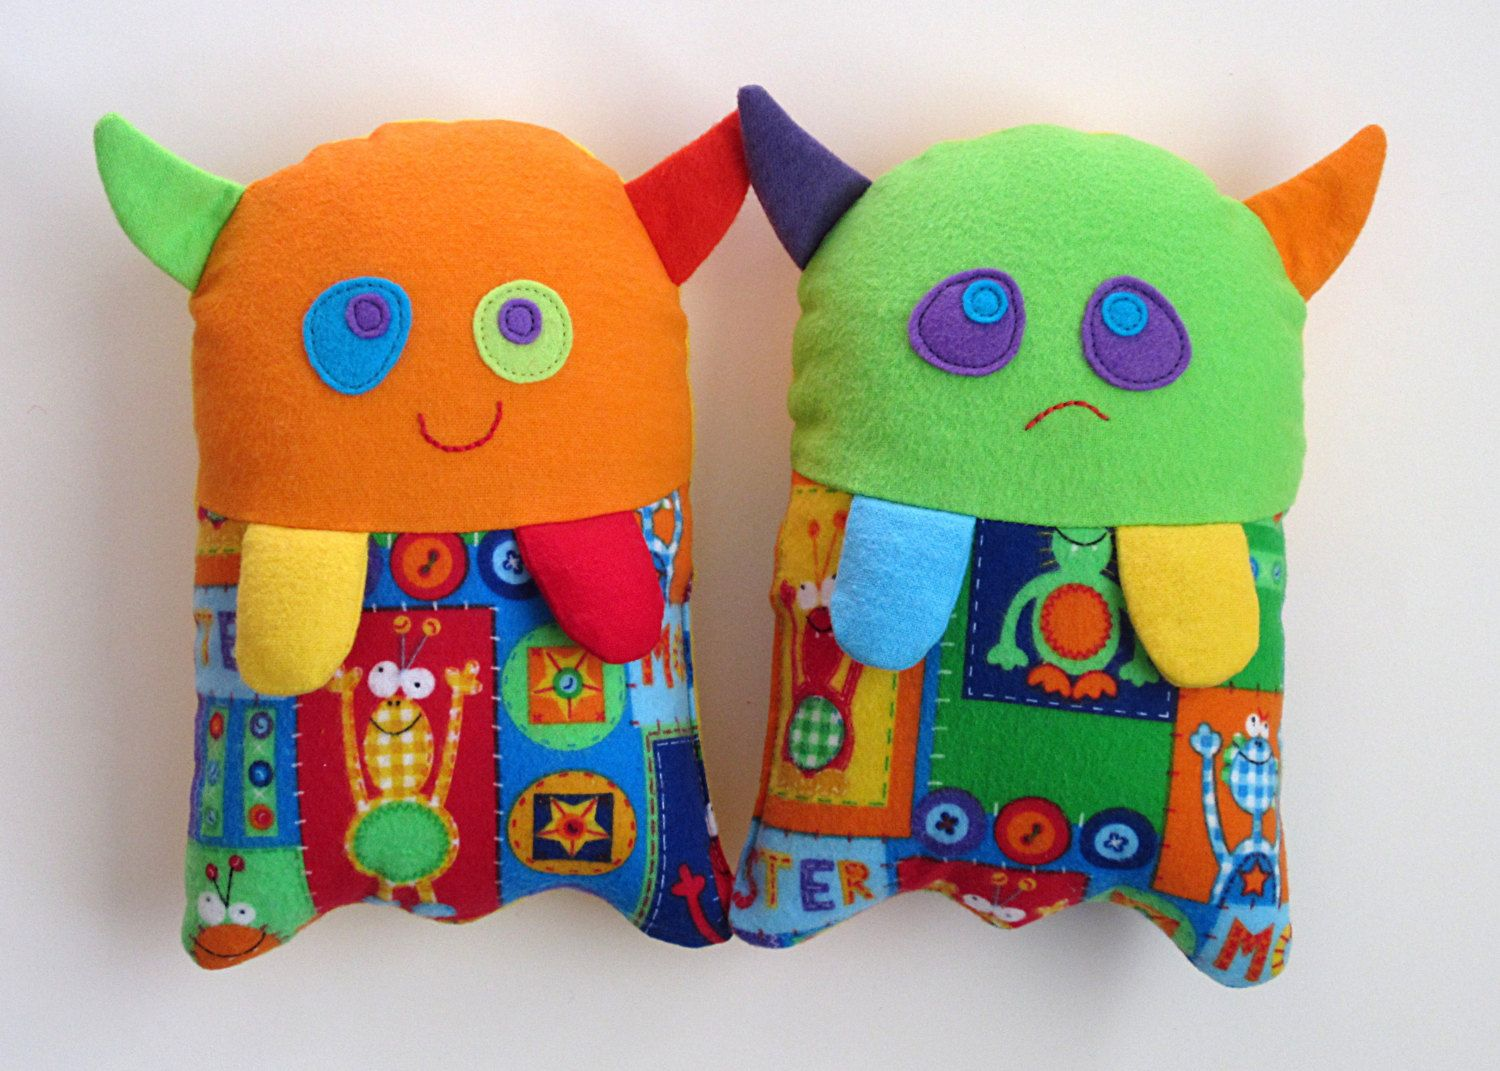 Sewing crafts for children - Explore Sewing Toys Sewing Crafts And More